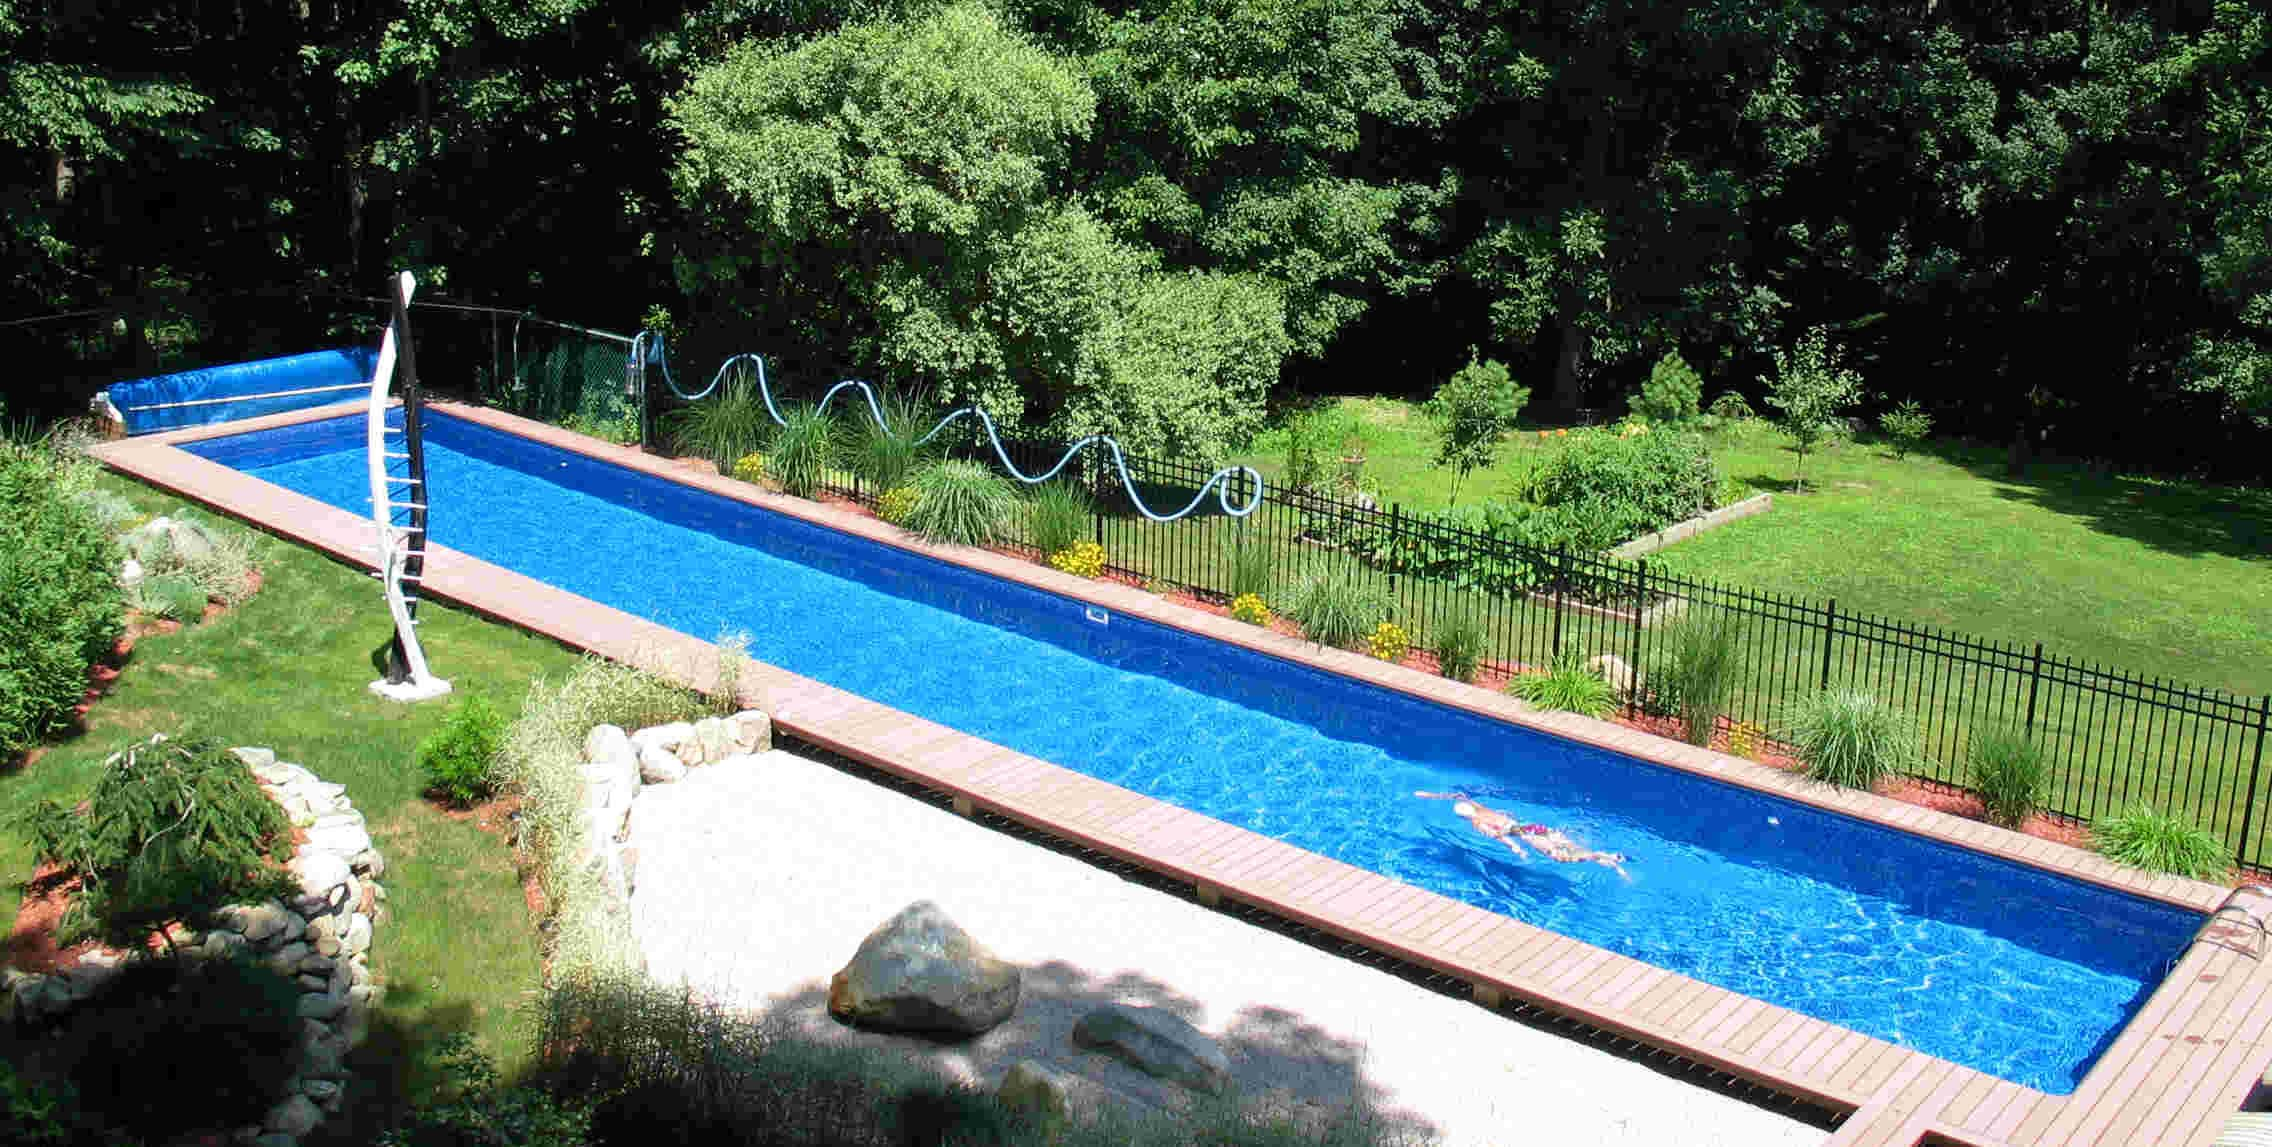 Diy inground swimming pool backyard design ideas for Backyard swimming pool designs